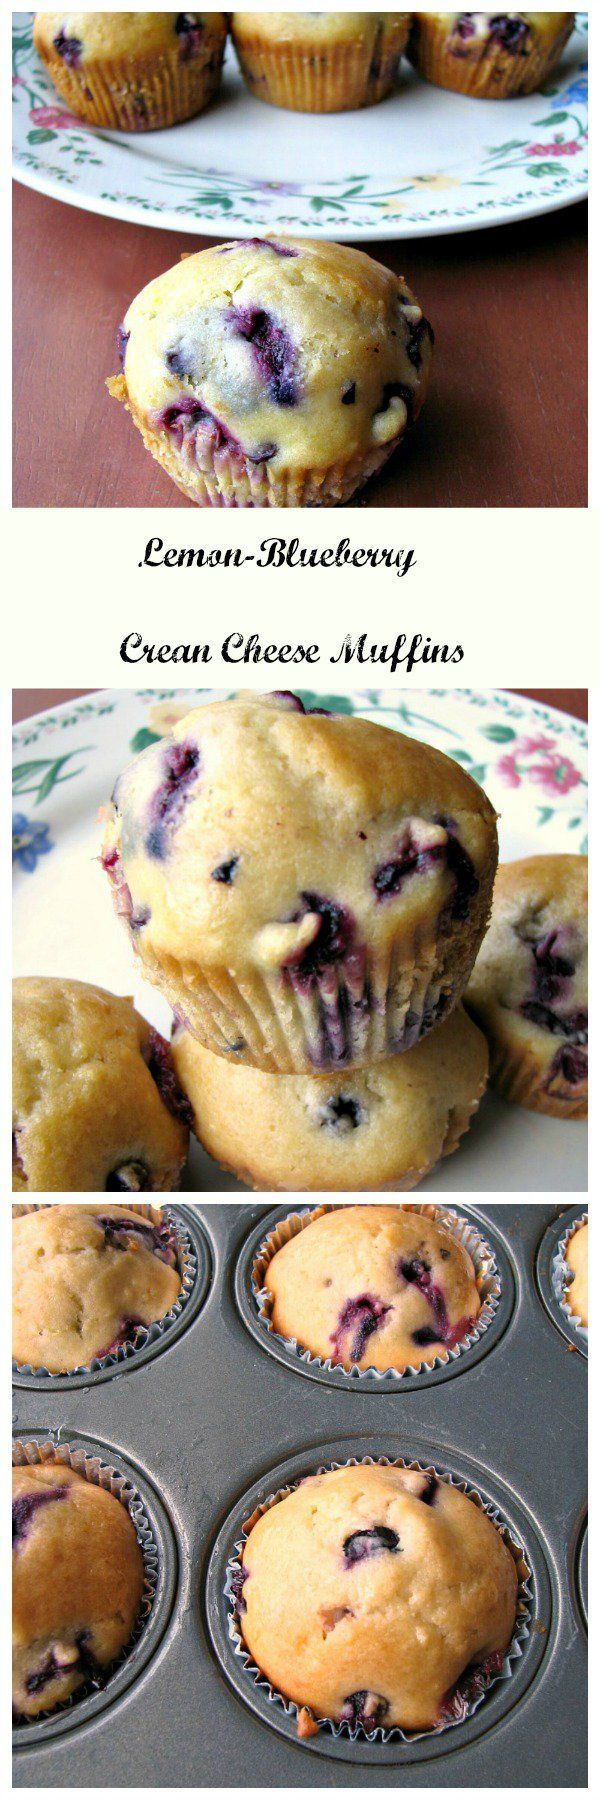 Sweet and tart Lemon-Blueberry Cream Cheese Muffins, great for breakfast, brunch, or a snack. Filled with lemon zest, blueberries, cream cheese, and topped with a delicious lemon glaze, they are just perfect for any table!